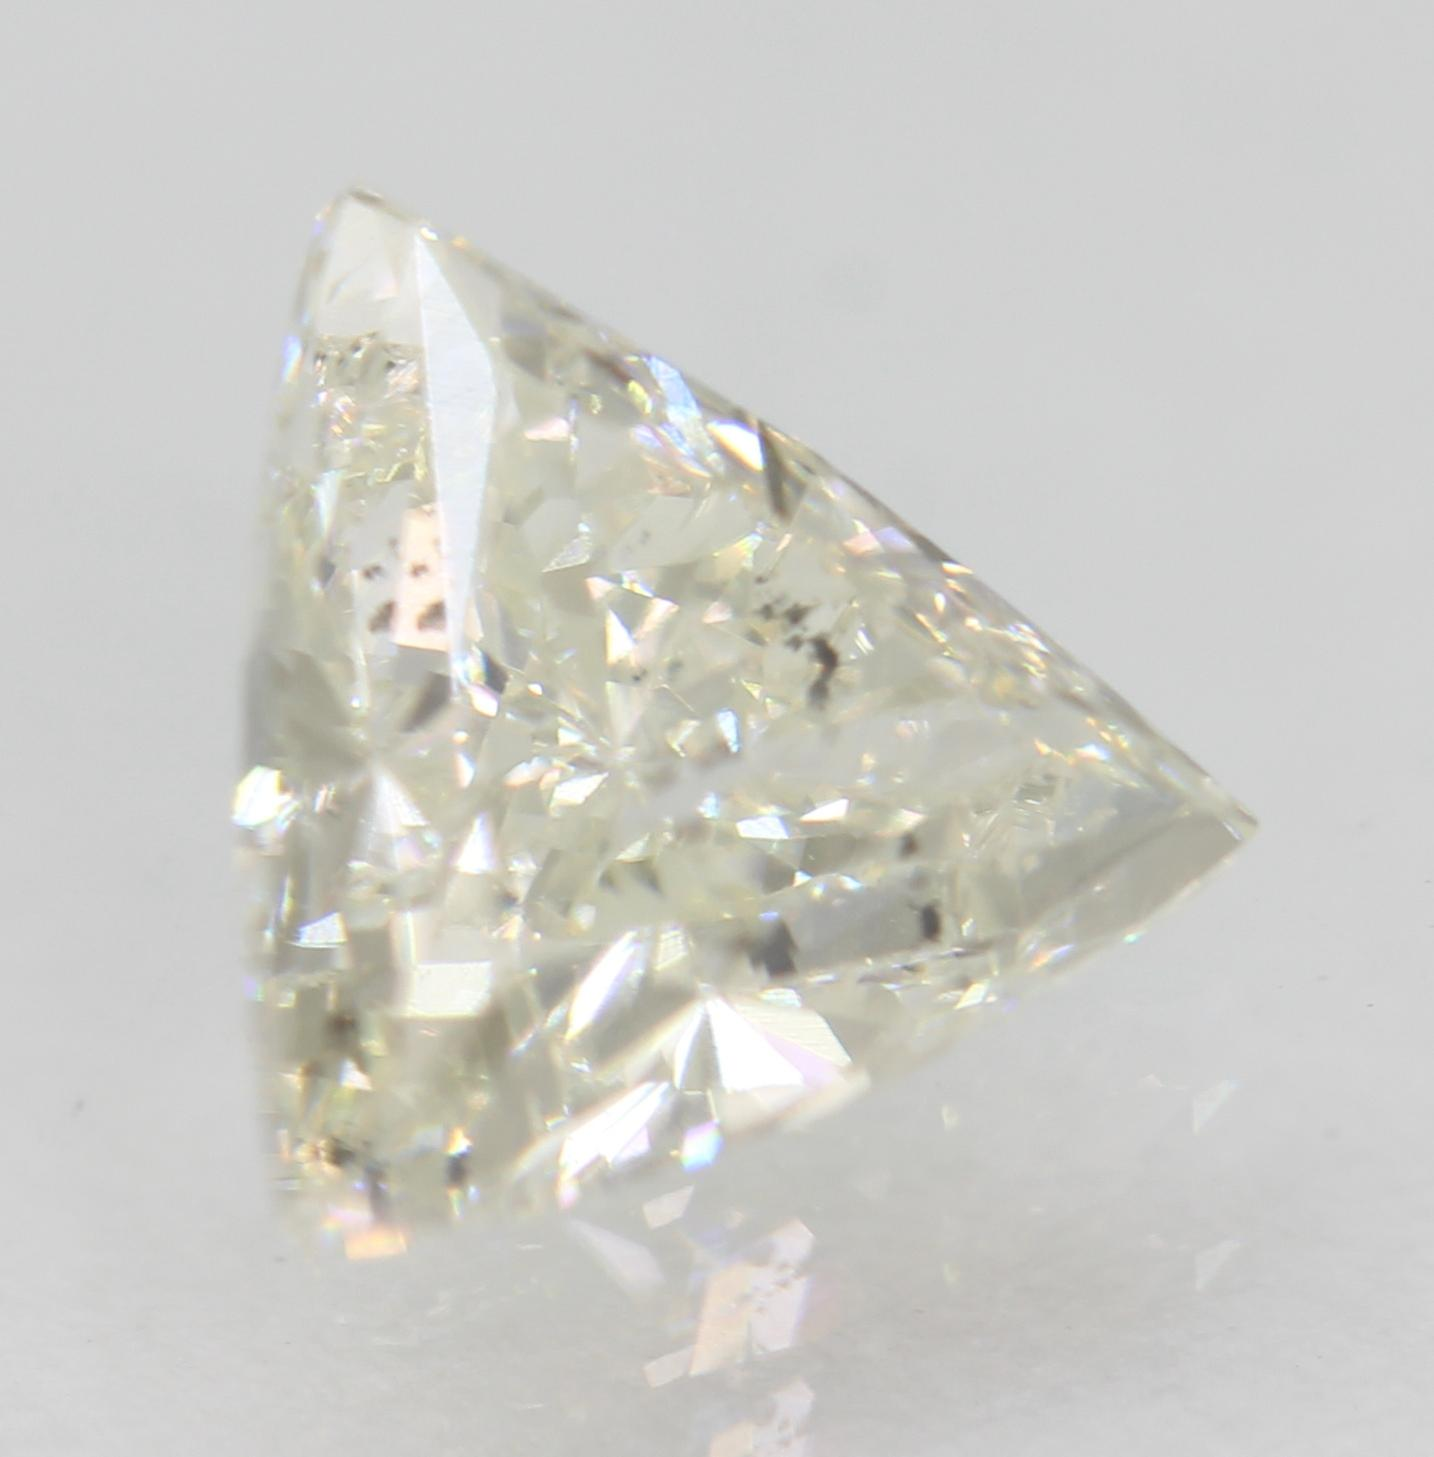 Certified 0.85 Carat G SI1 Triangle Natural Loose Diamond For Ring 7.16x6.6mm